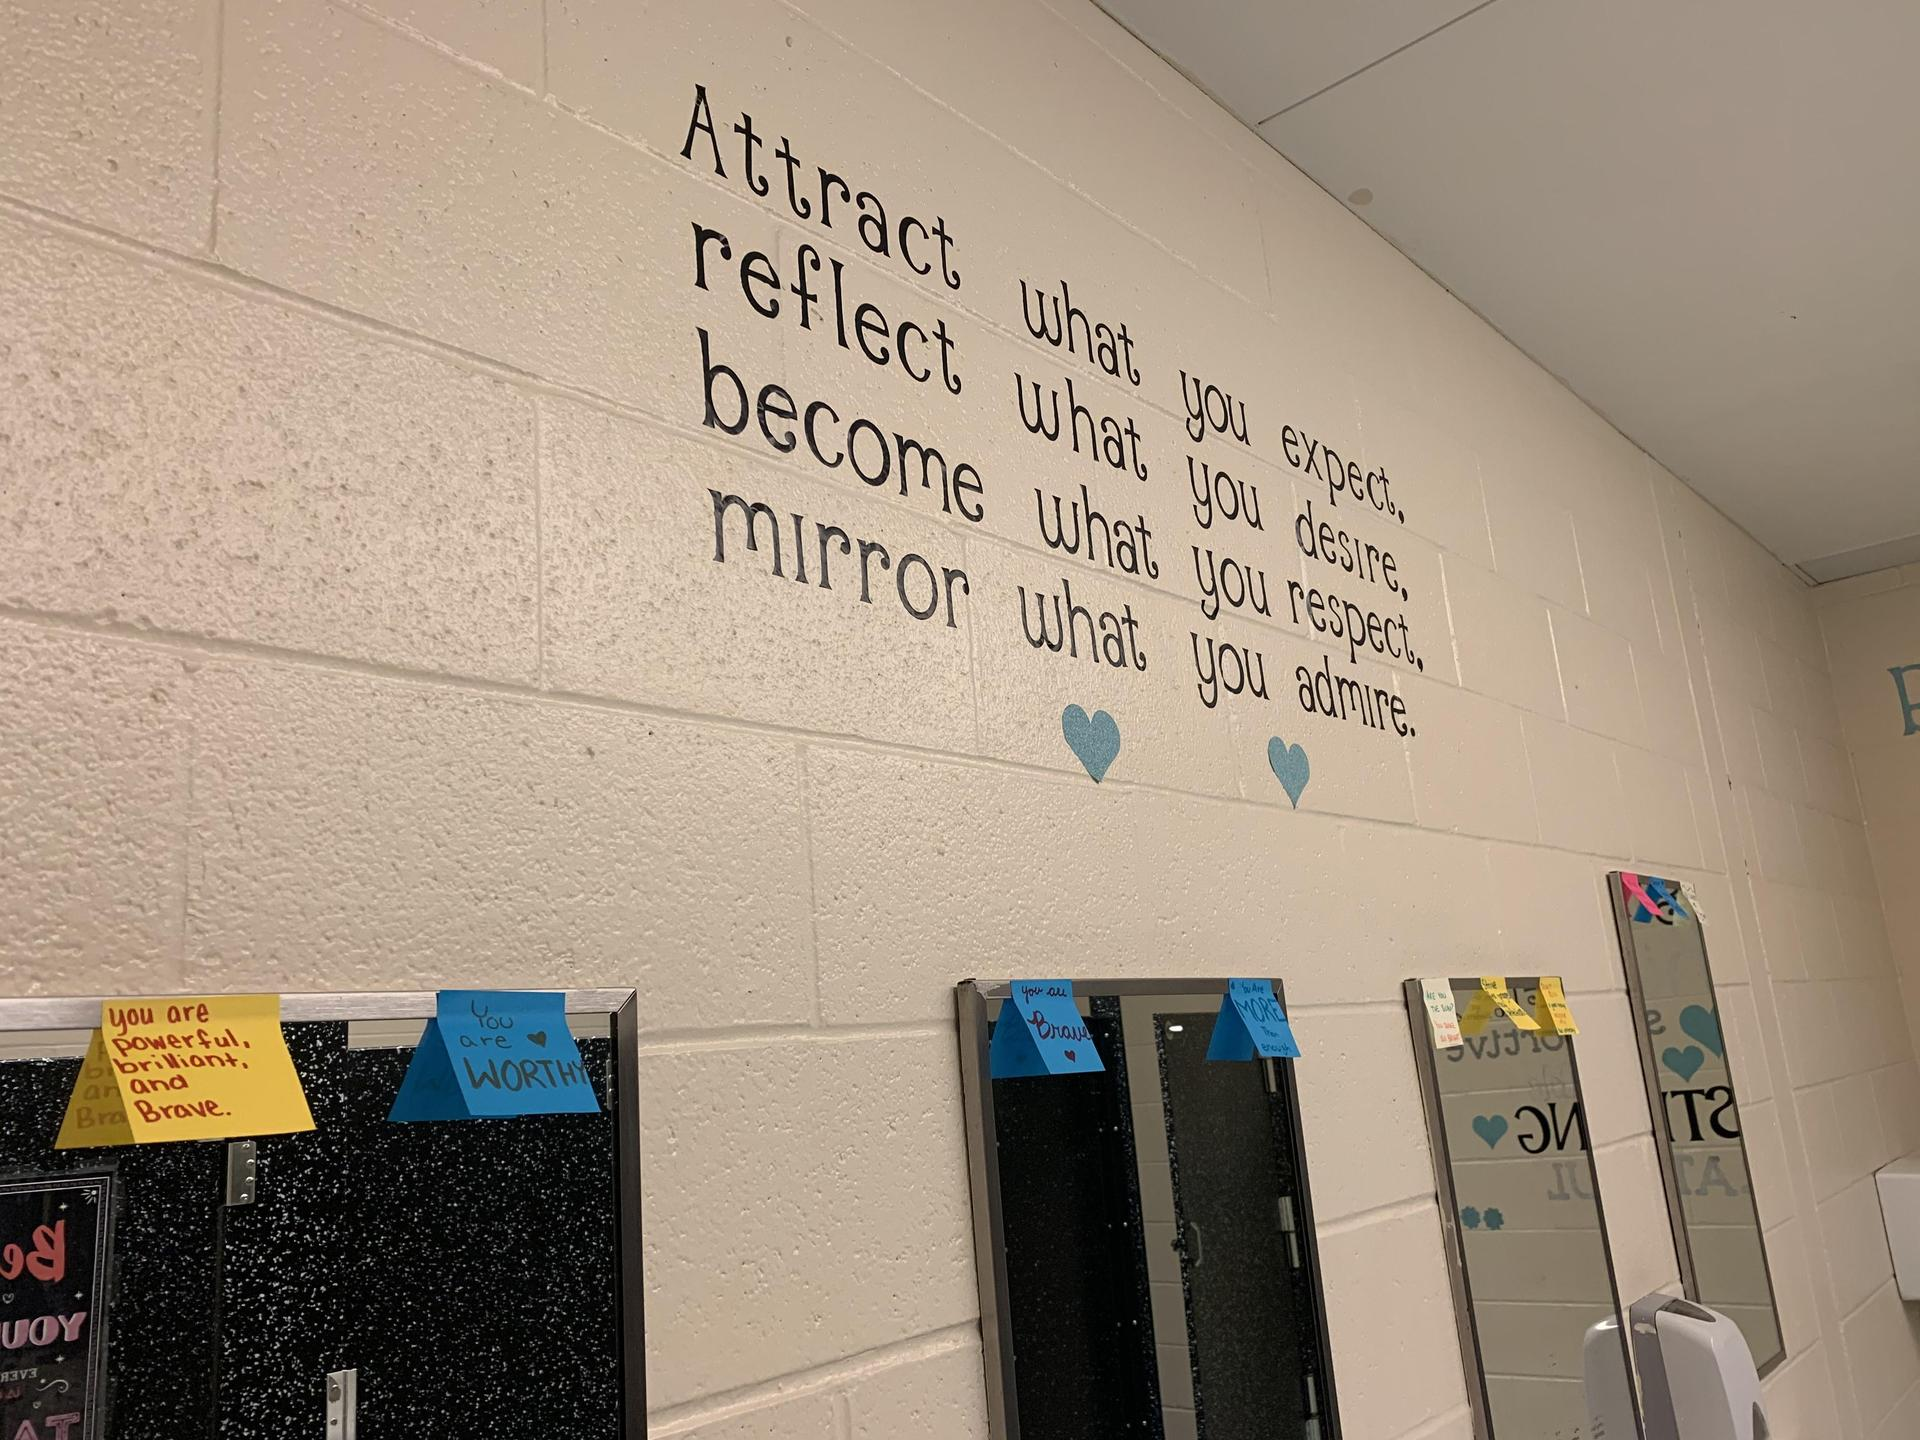 Pic of bathroom mirror with positive messages from students to students